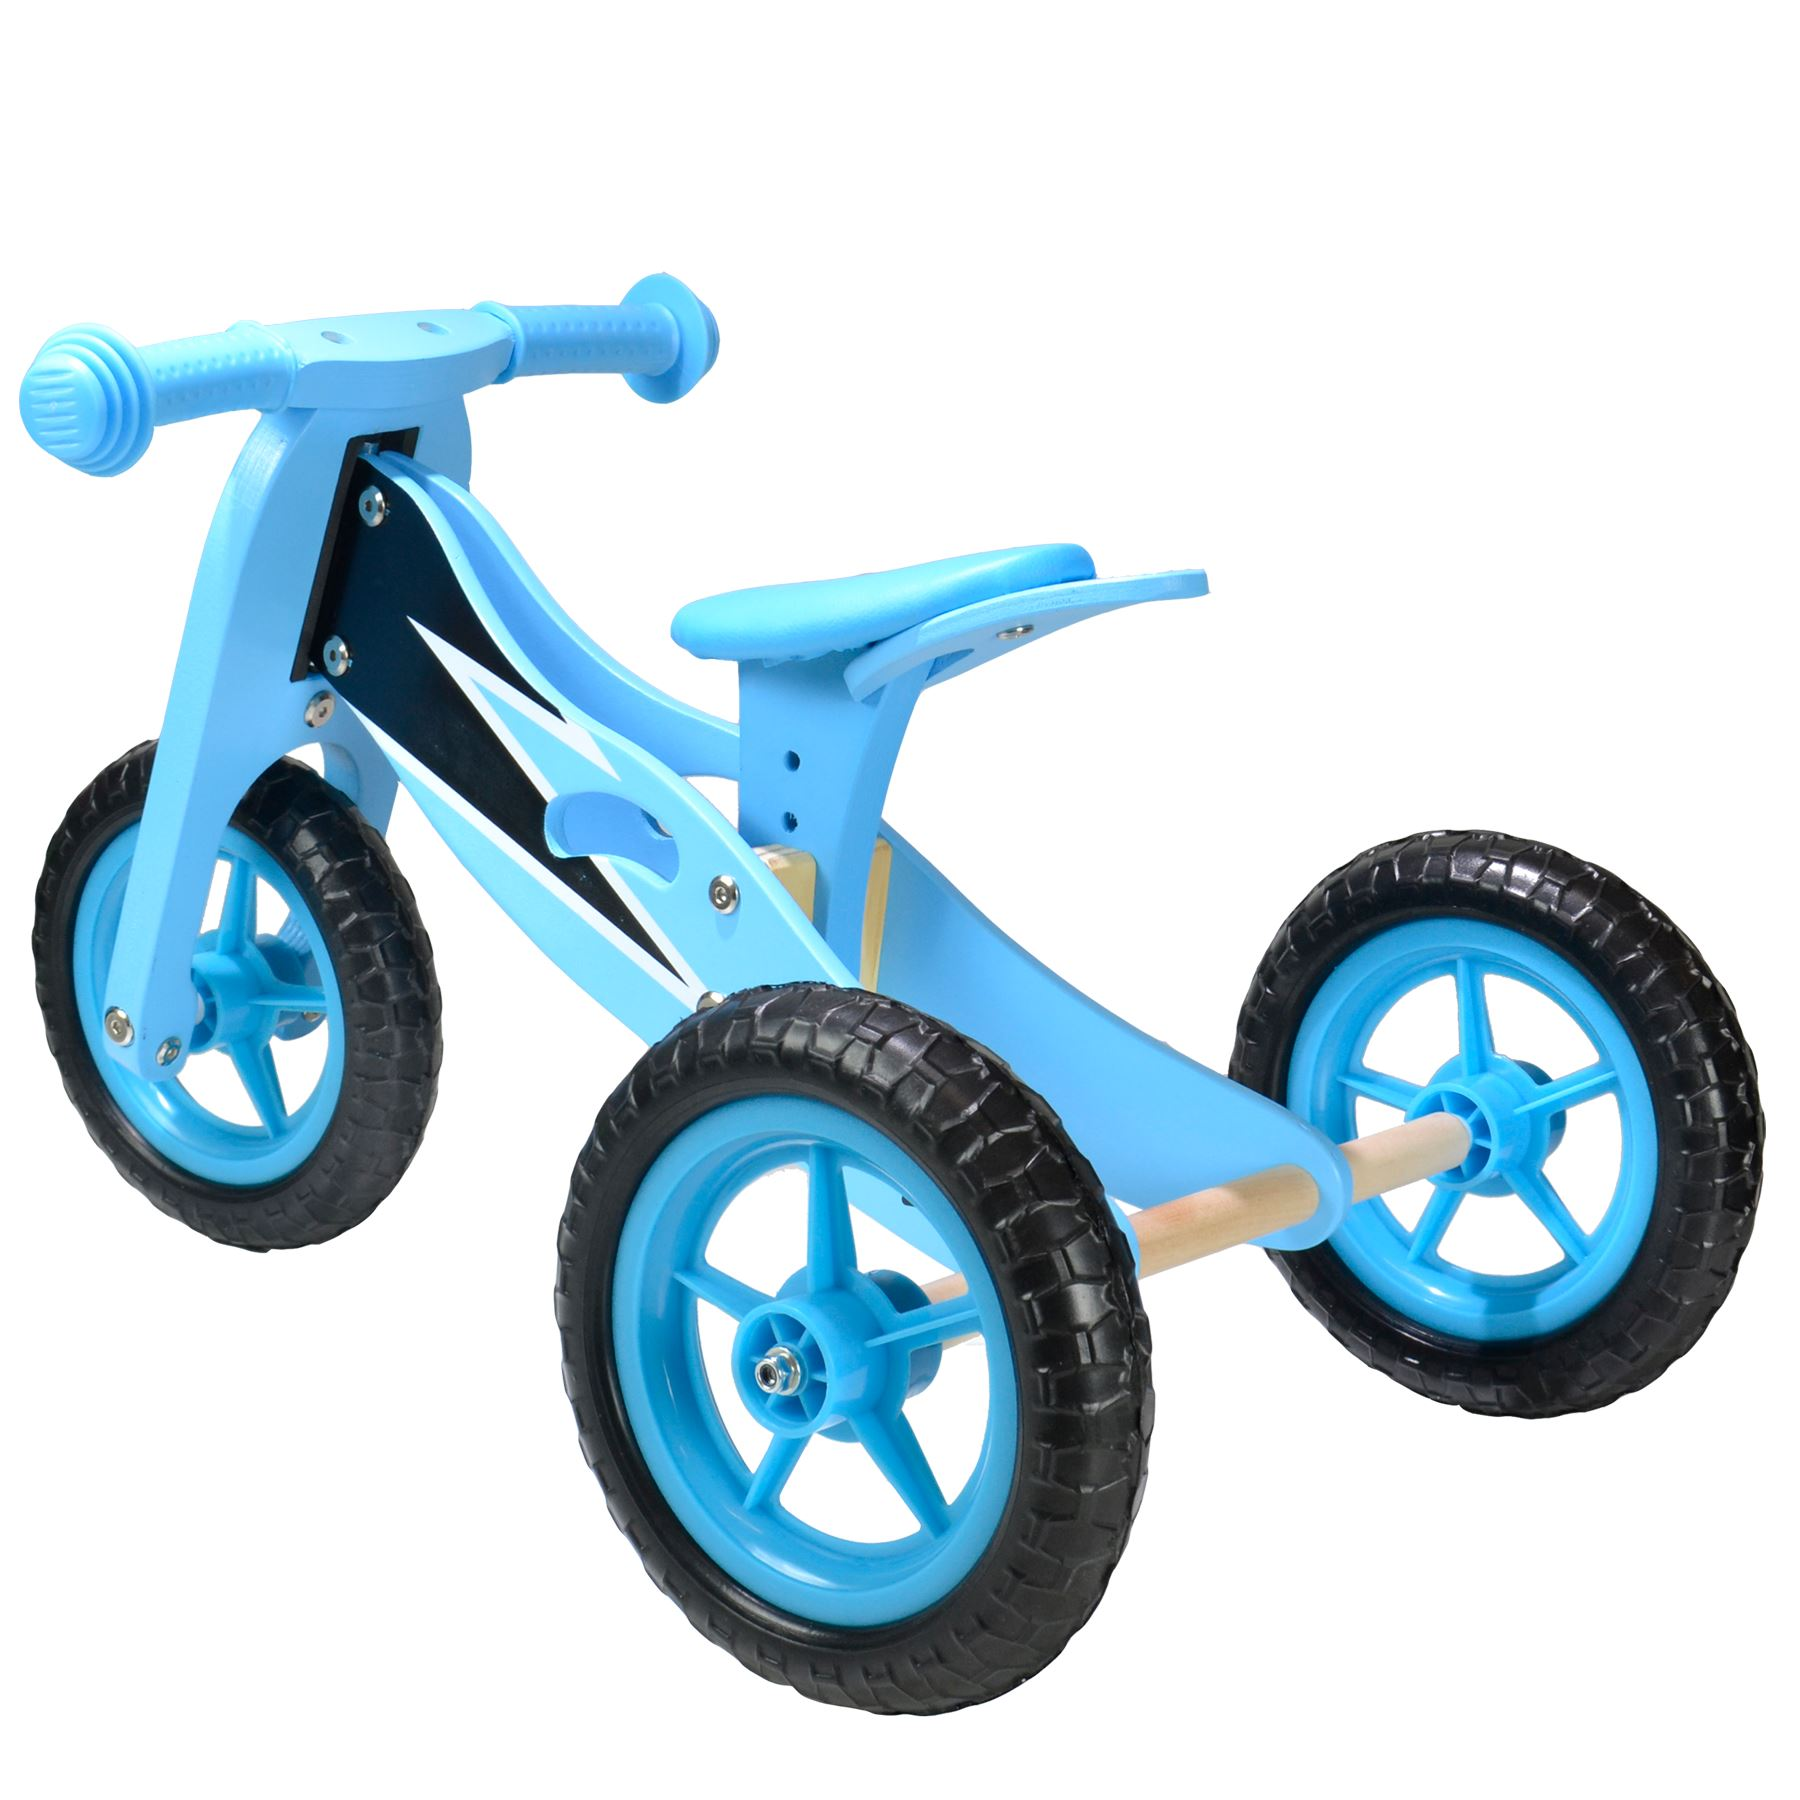 boppi baby first 2 in 1 trike bike wooden tricycle. Black Bedroom Furniture Sets. Home Design Ideas